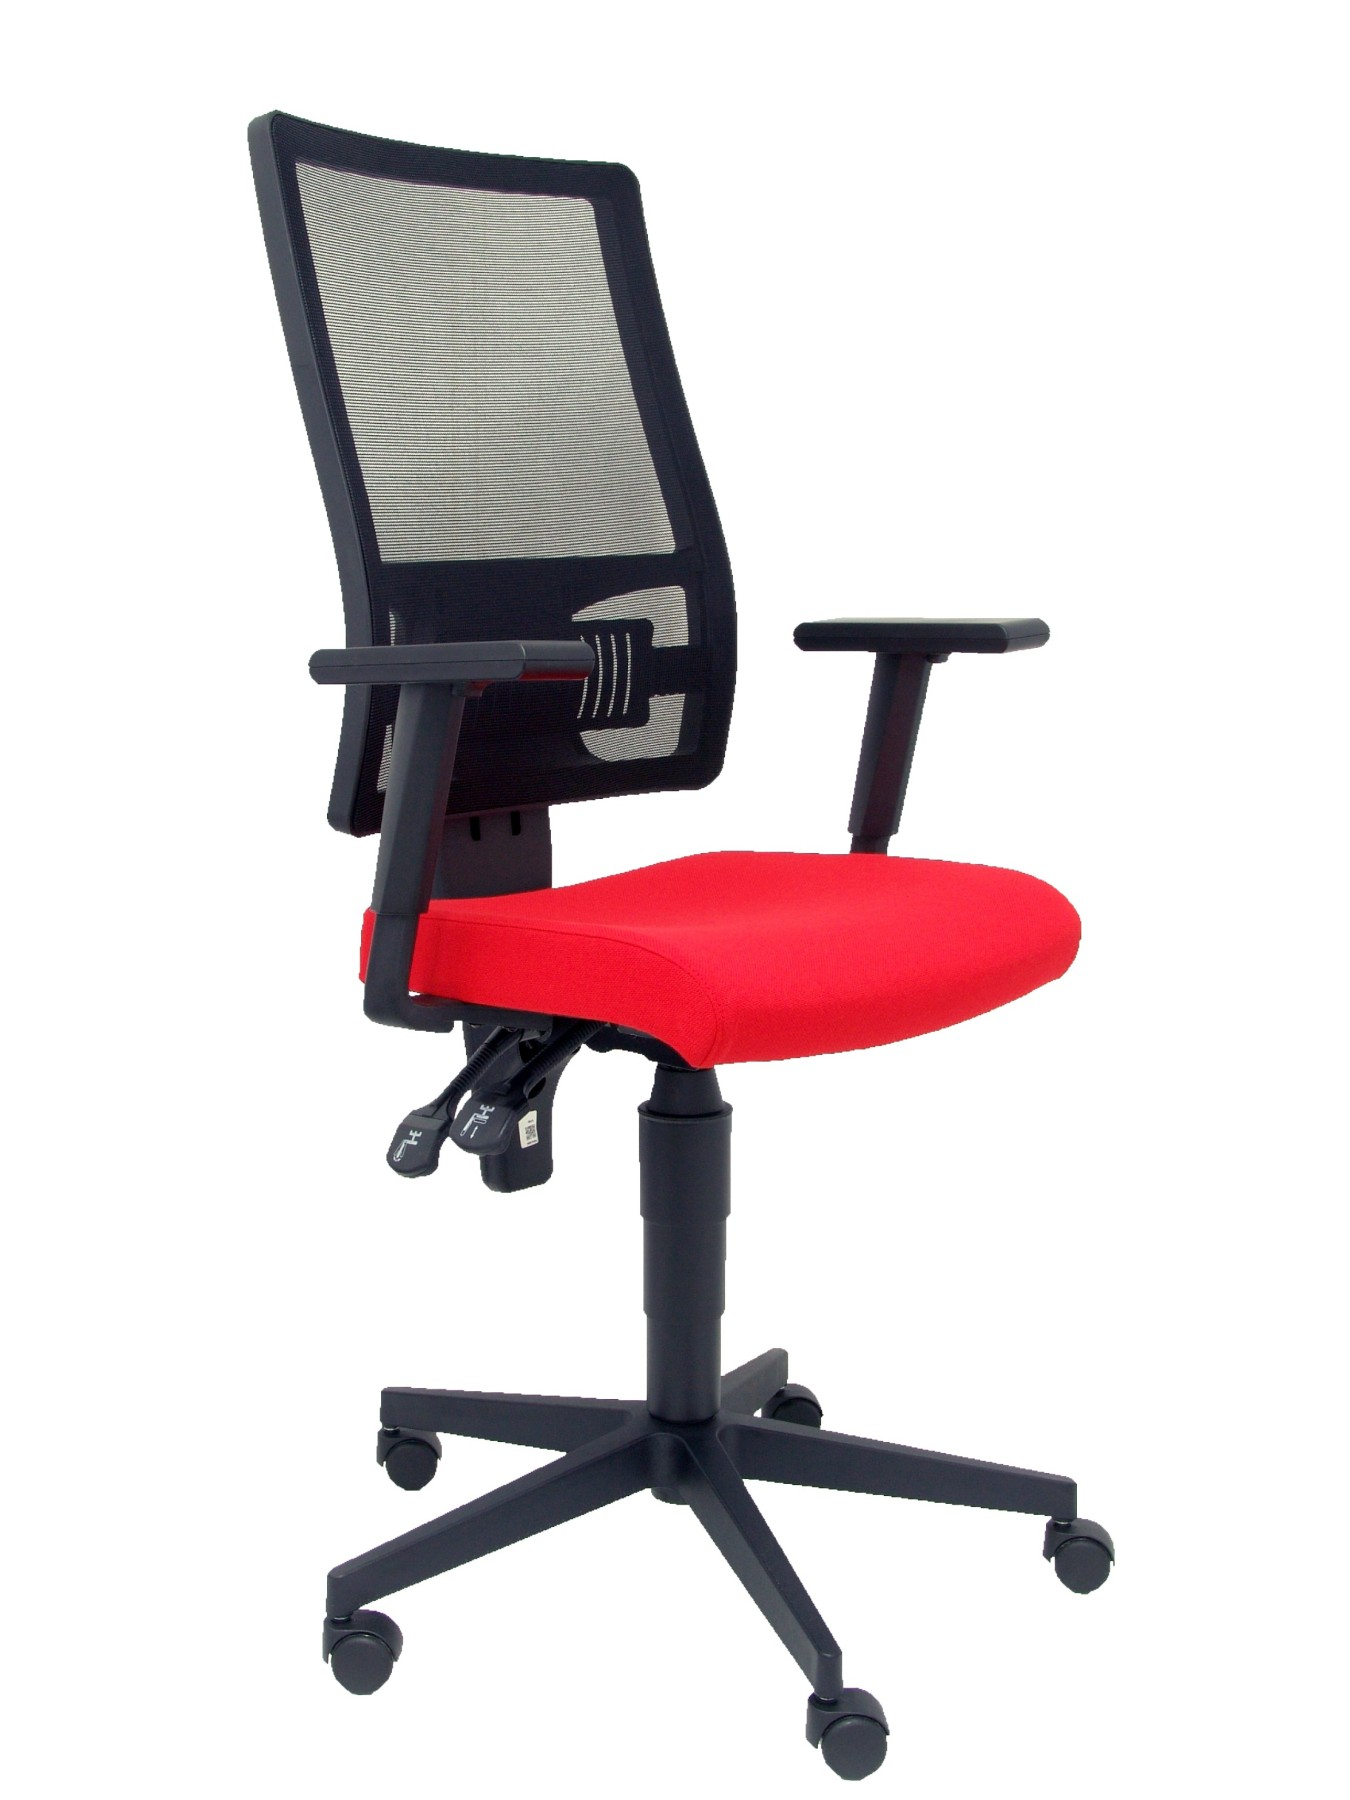 Chair's Office Desk Ergonomic With House Mechanism Sincro, Arms Adjustable And Lumbar Support-respaldo De Breathable Mesh